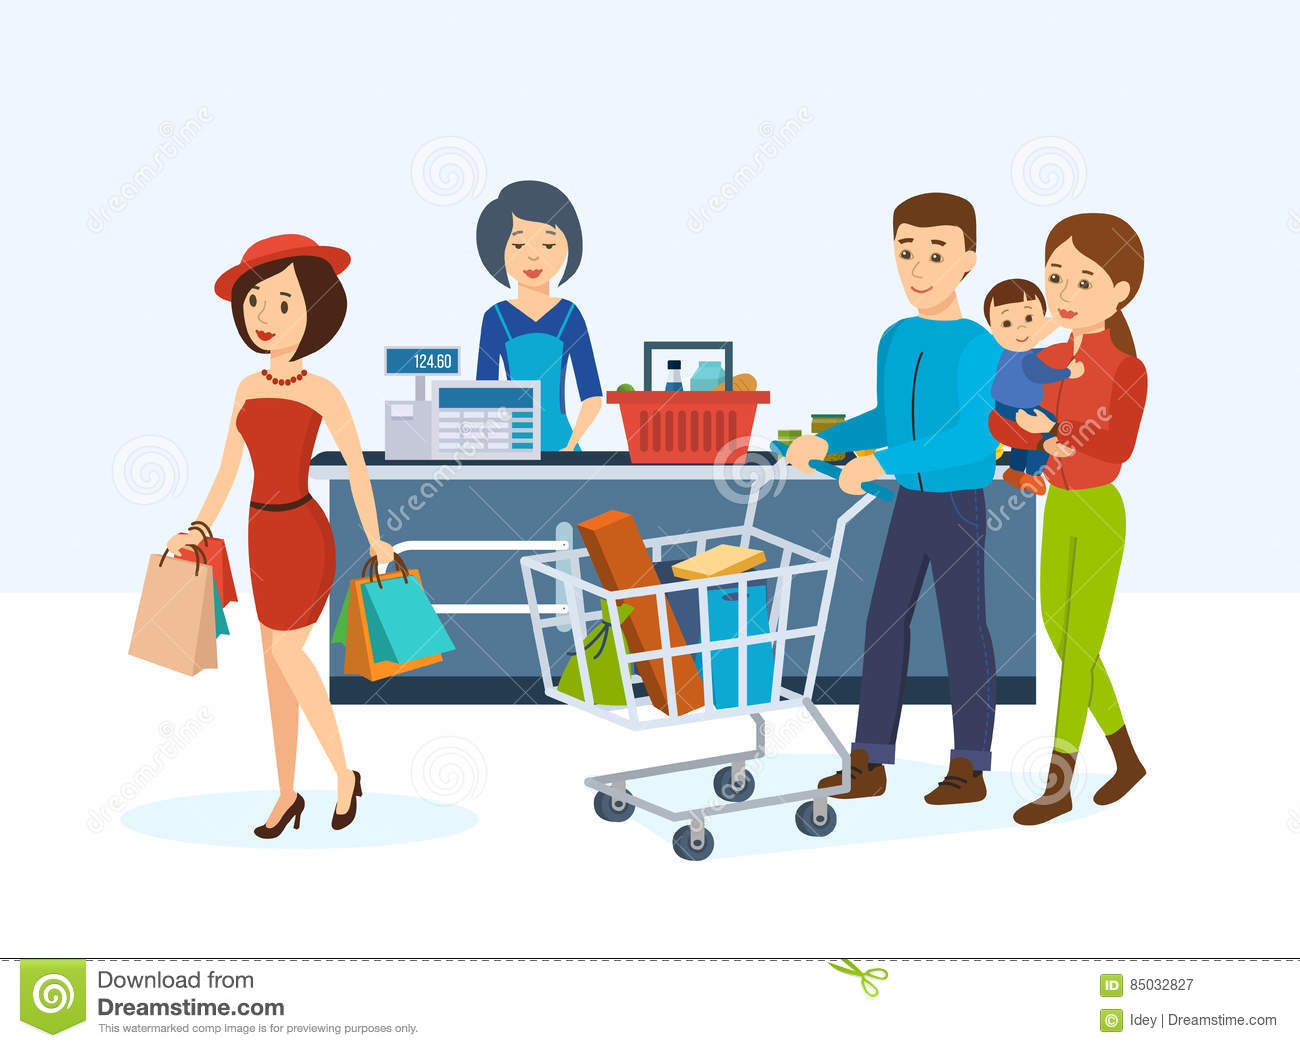 Buyers, go around the store in order to purchase goods.